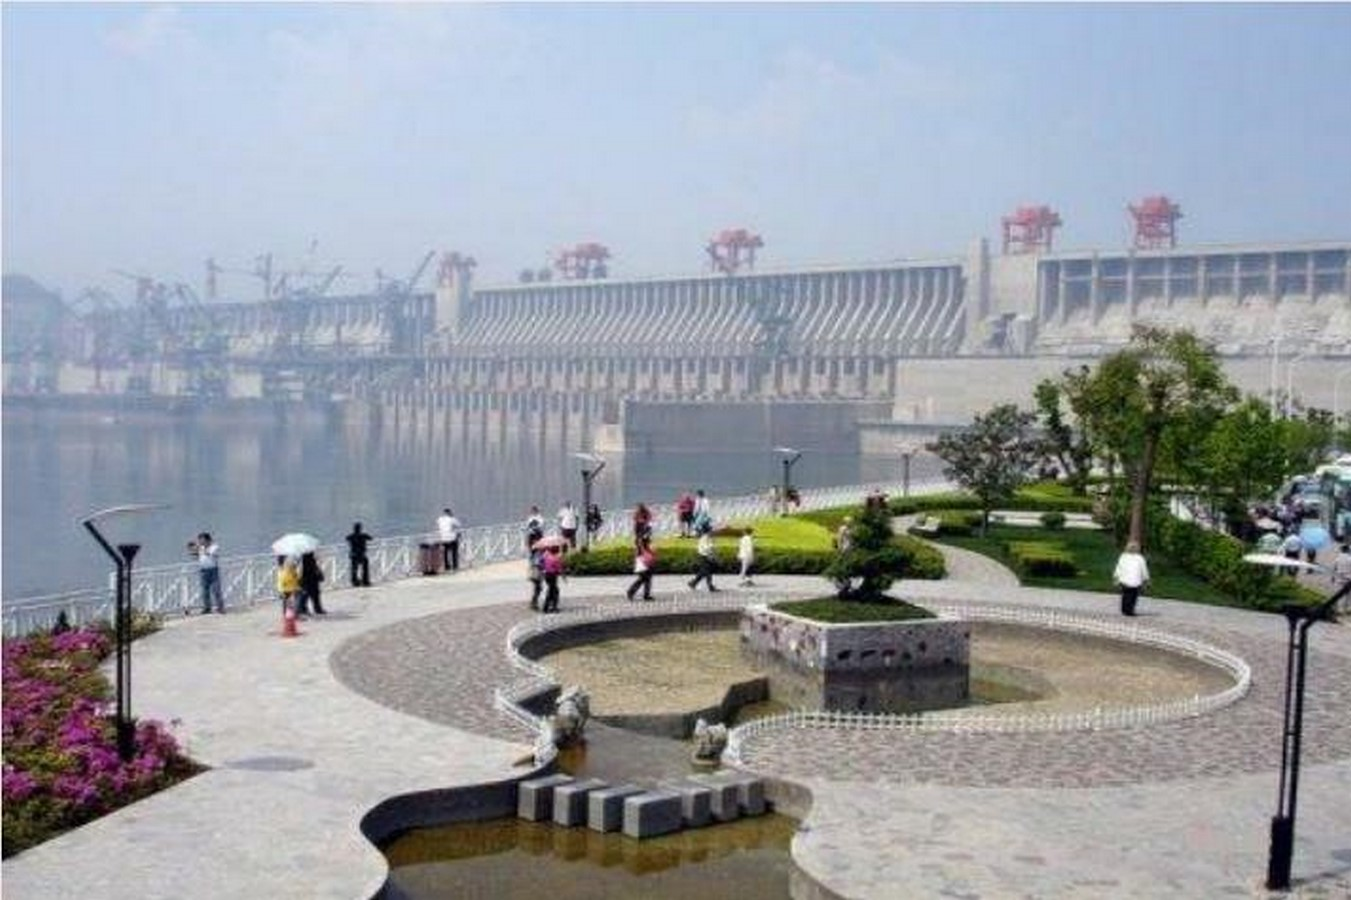 Three Gorges Dam by Pan Jiazheng- The world's Largest hydroelectric dam - Sheet21